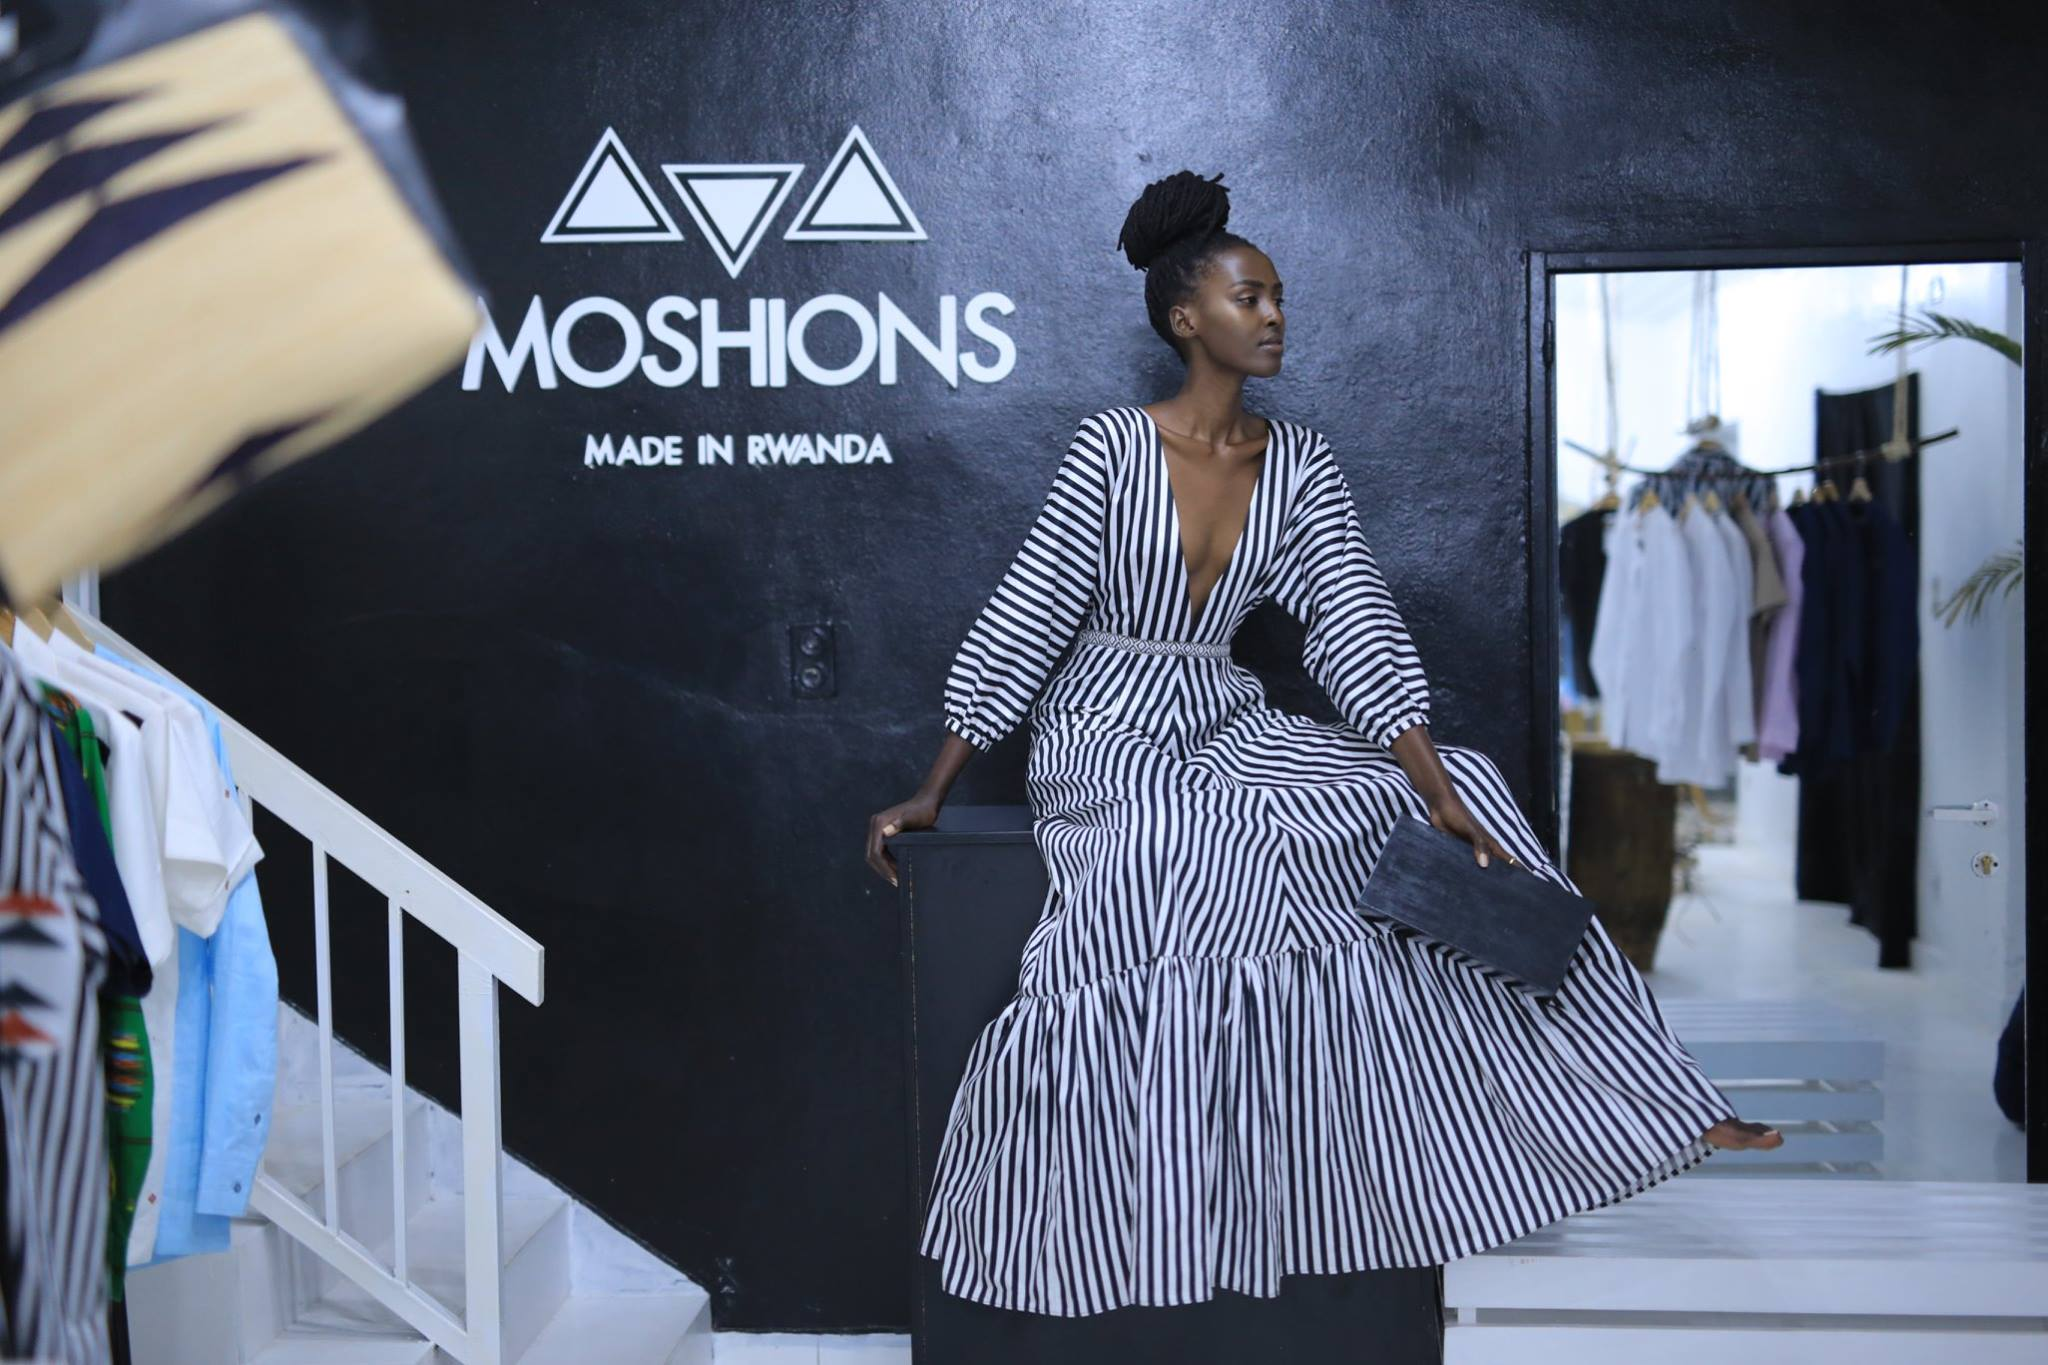 Established in 2015, as one of Rwanda's leading fashion houses, Moshions is an elegant culturally inspired brand, sought after by discerning African...